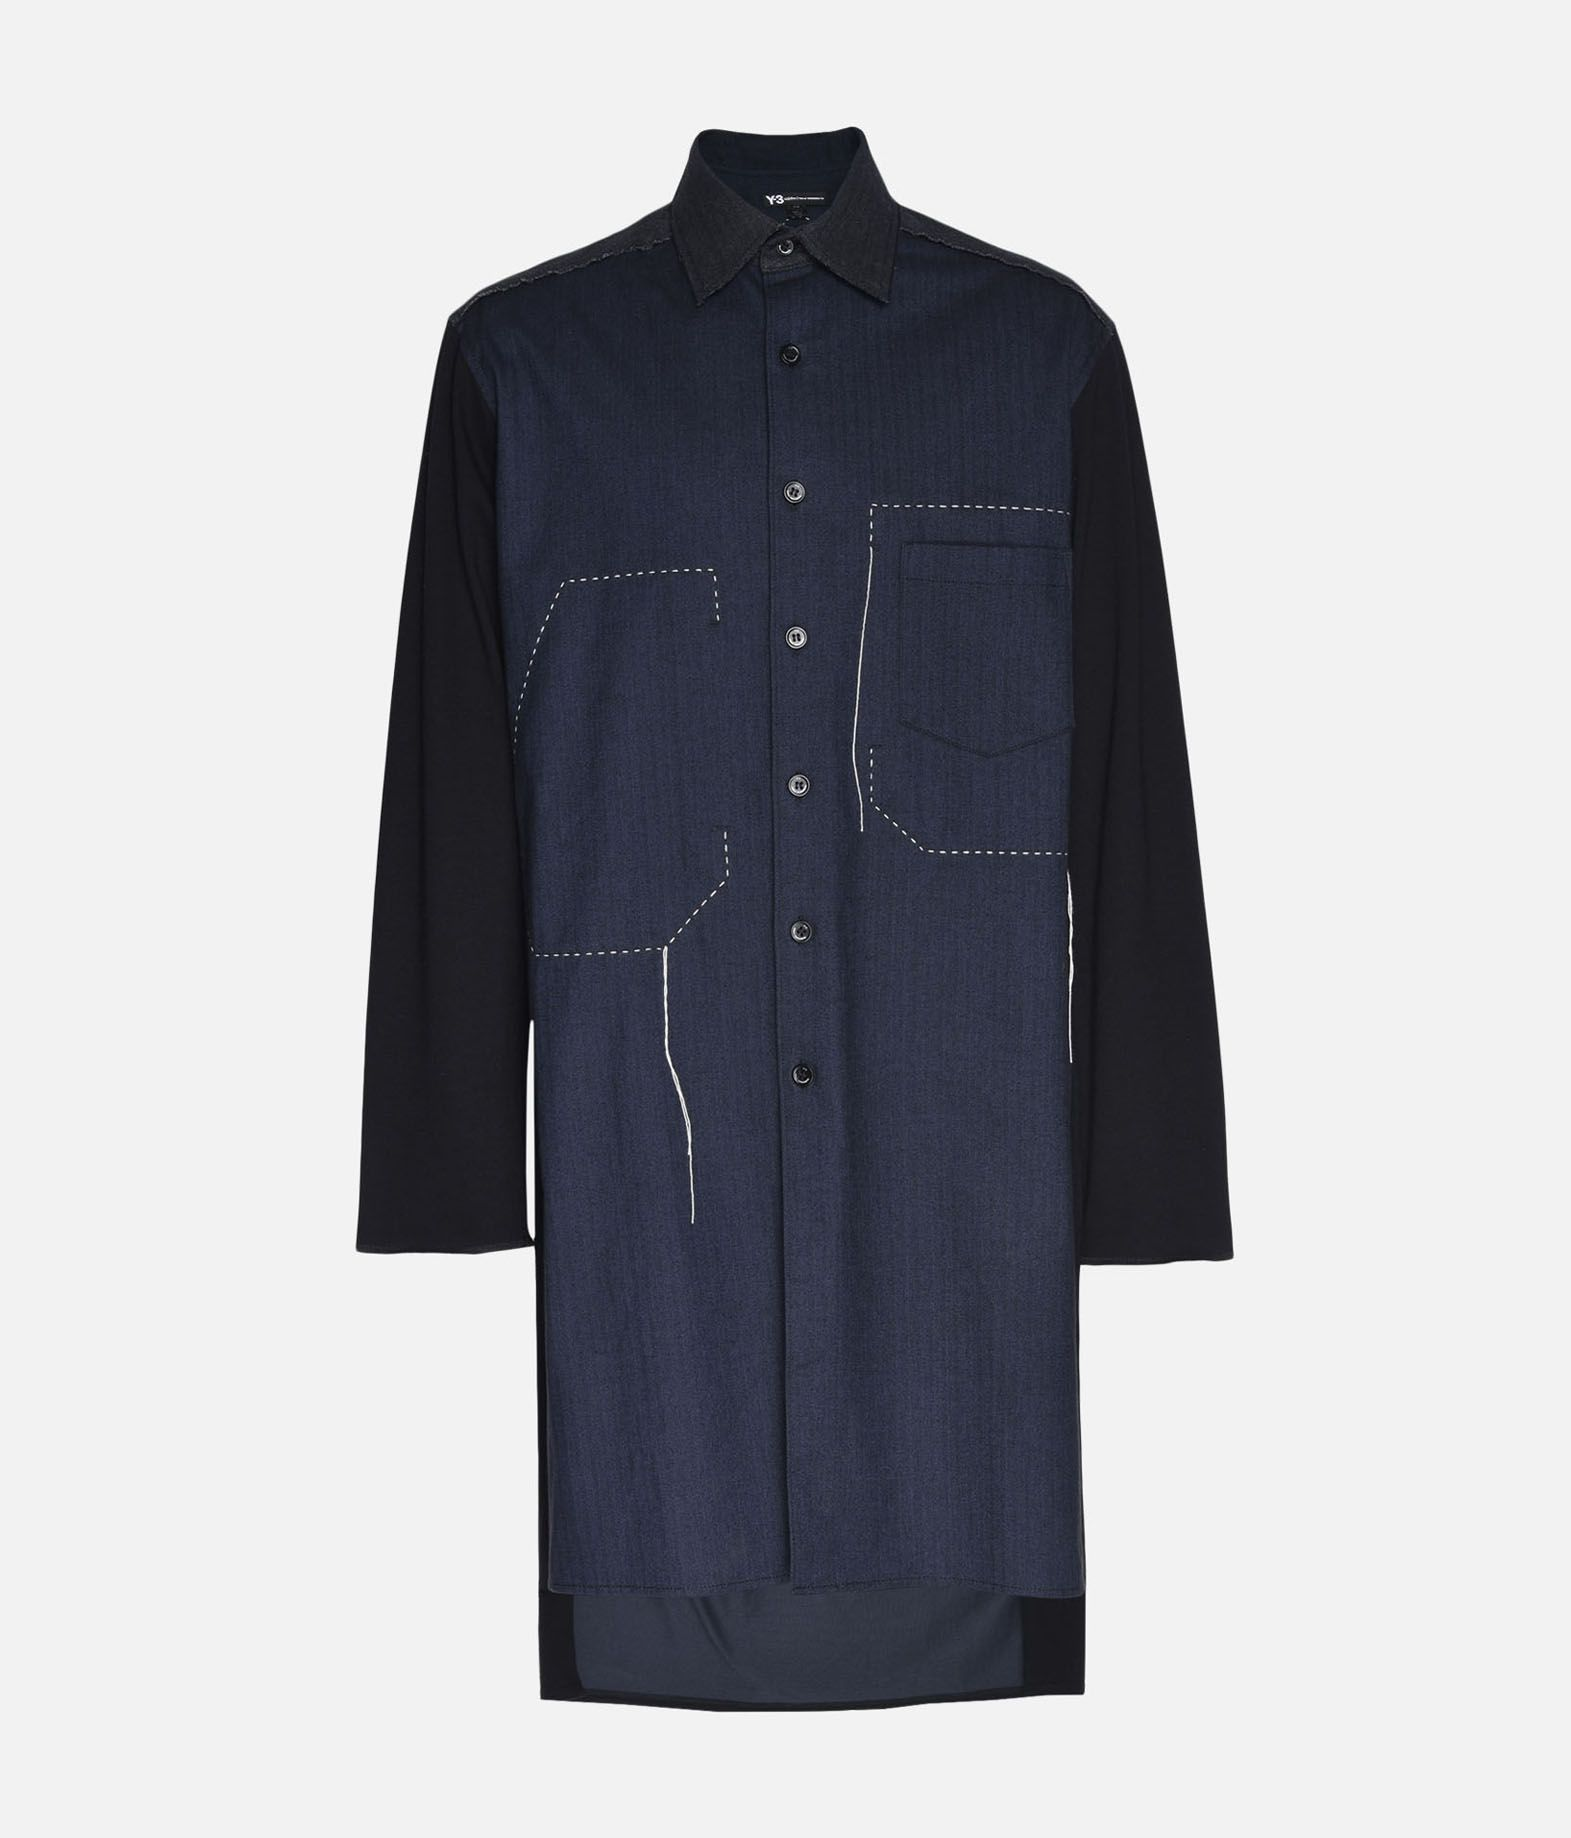 Y-3 Y-3 Herringbone Long Shirt Long sleeve shirt Man f